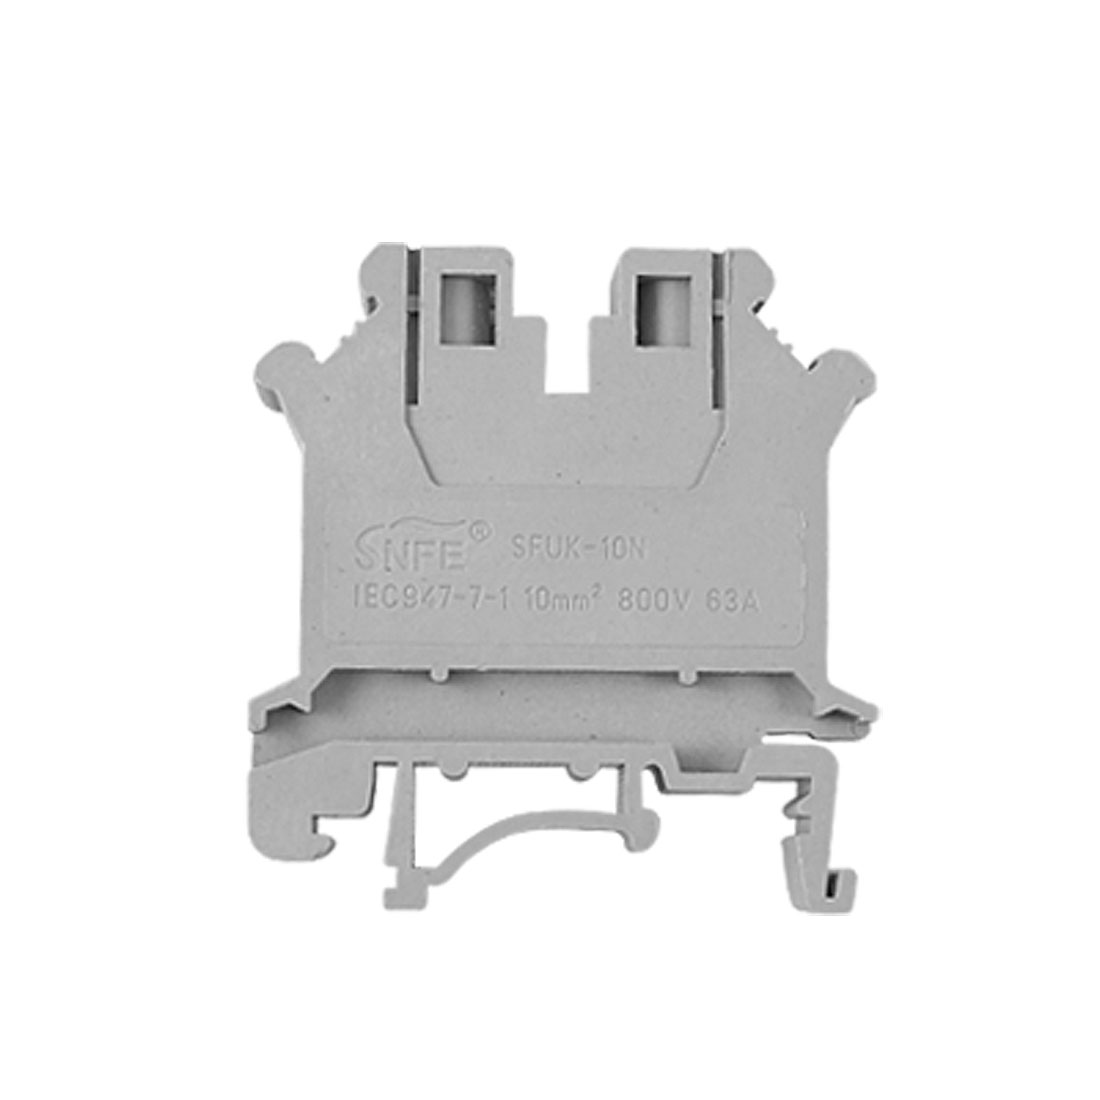 UK-10N IEC60947-7-1 Electrical Terminal Block Connector